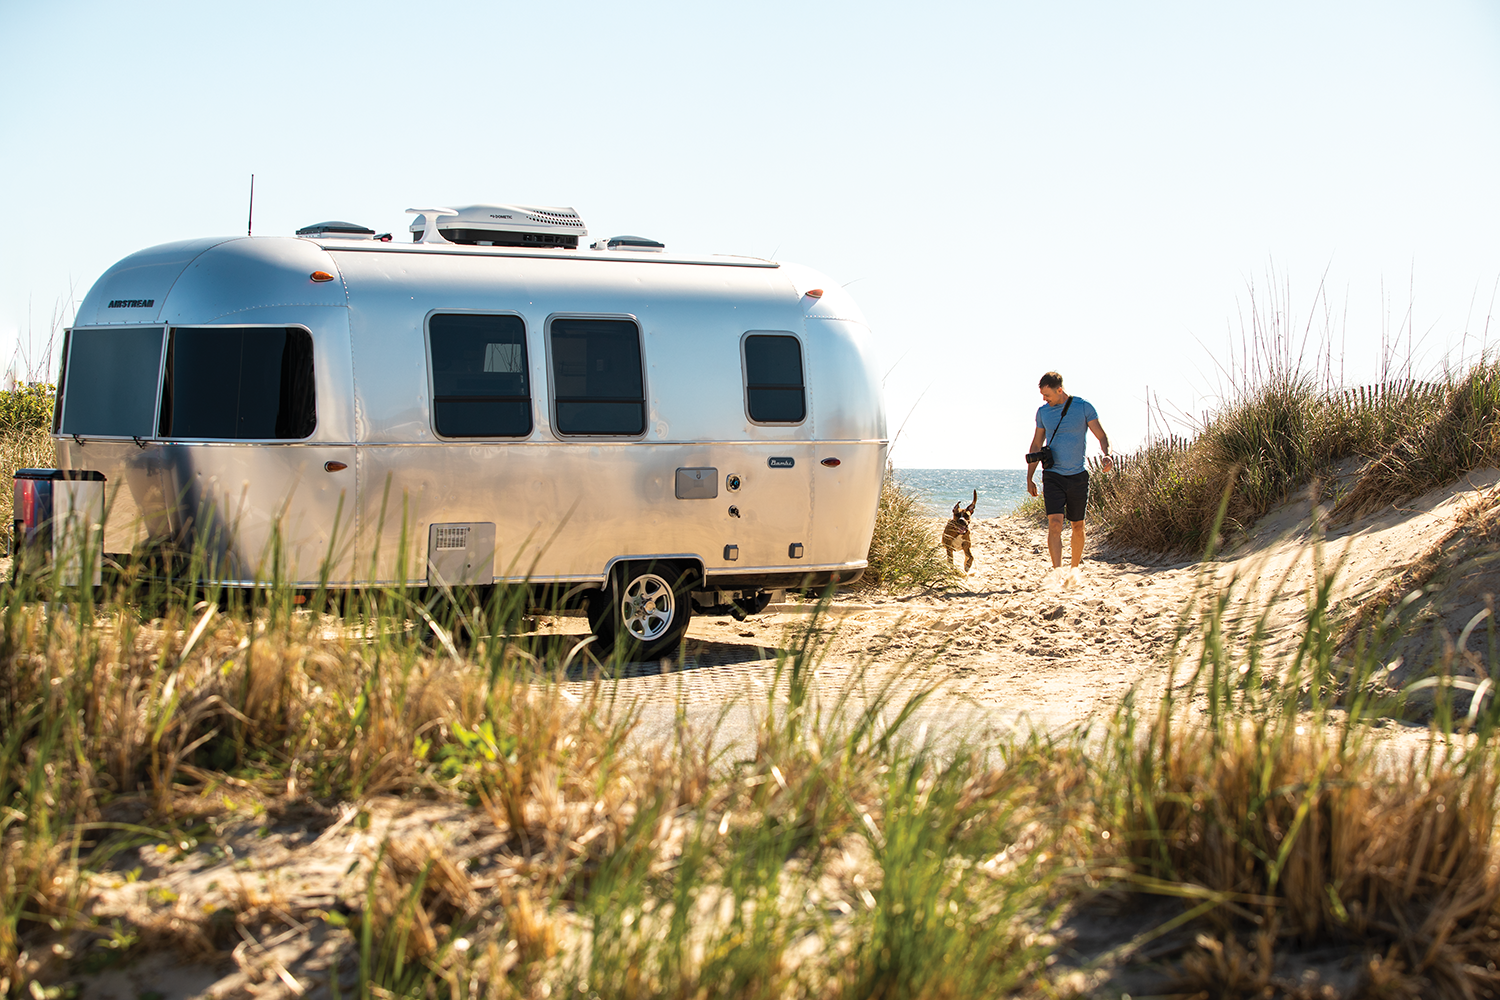 Airstream debuts two new compact travel trailers